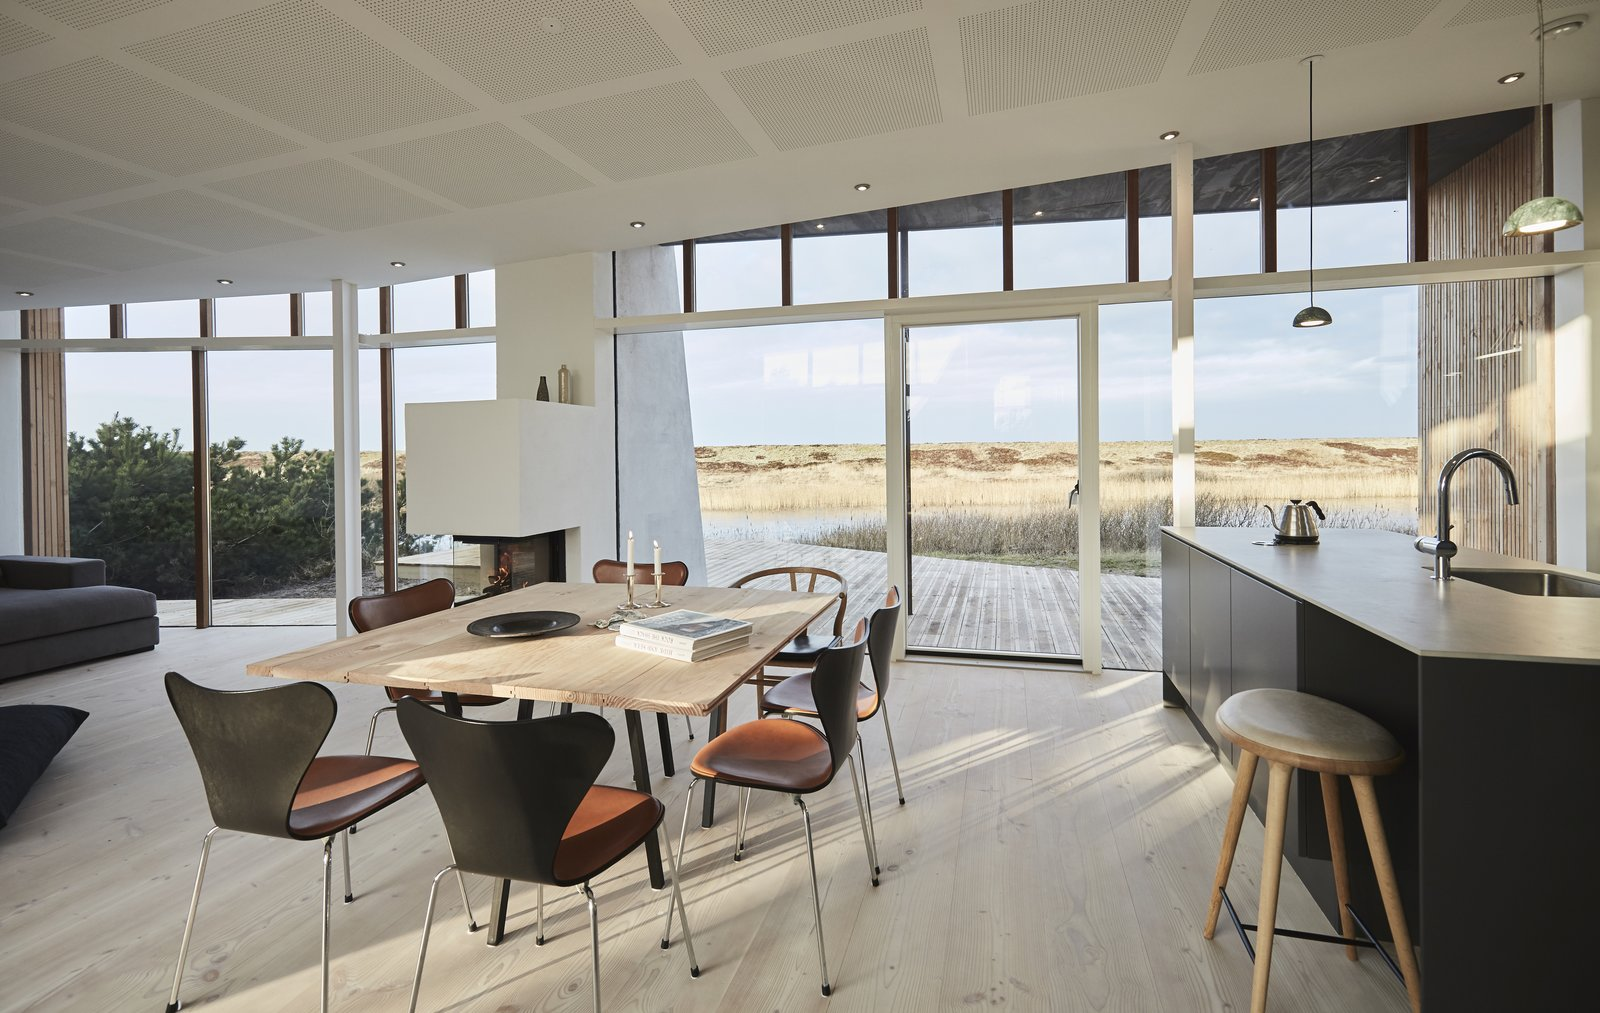 Dining, Pendant, Table, Chair, Light Hardwood, Recessed, and Wood Burning Typical of modern Scandinavian homes, the interiors are bright and airy.  Best Dining Wood Burning Light Hardwood Photos from Rent This Danish A-Frame For Your Next Nordic Escape